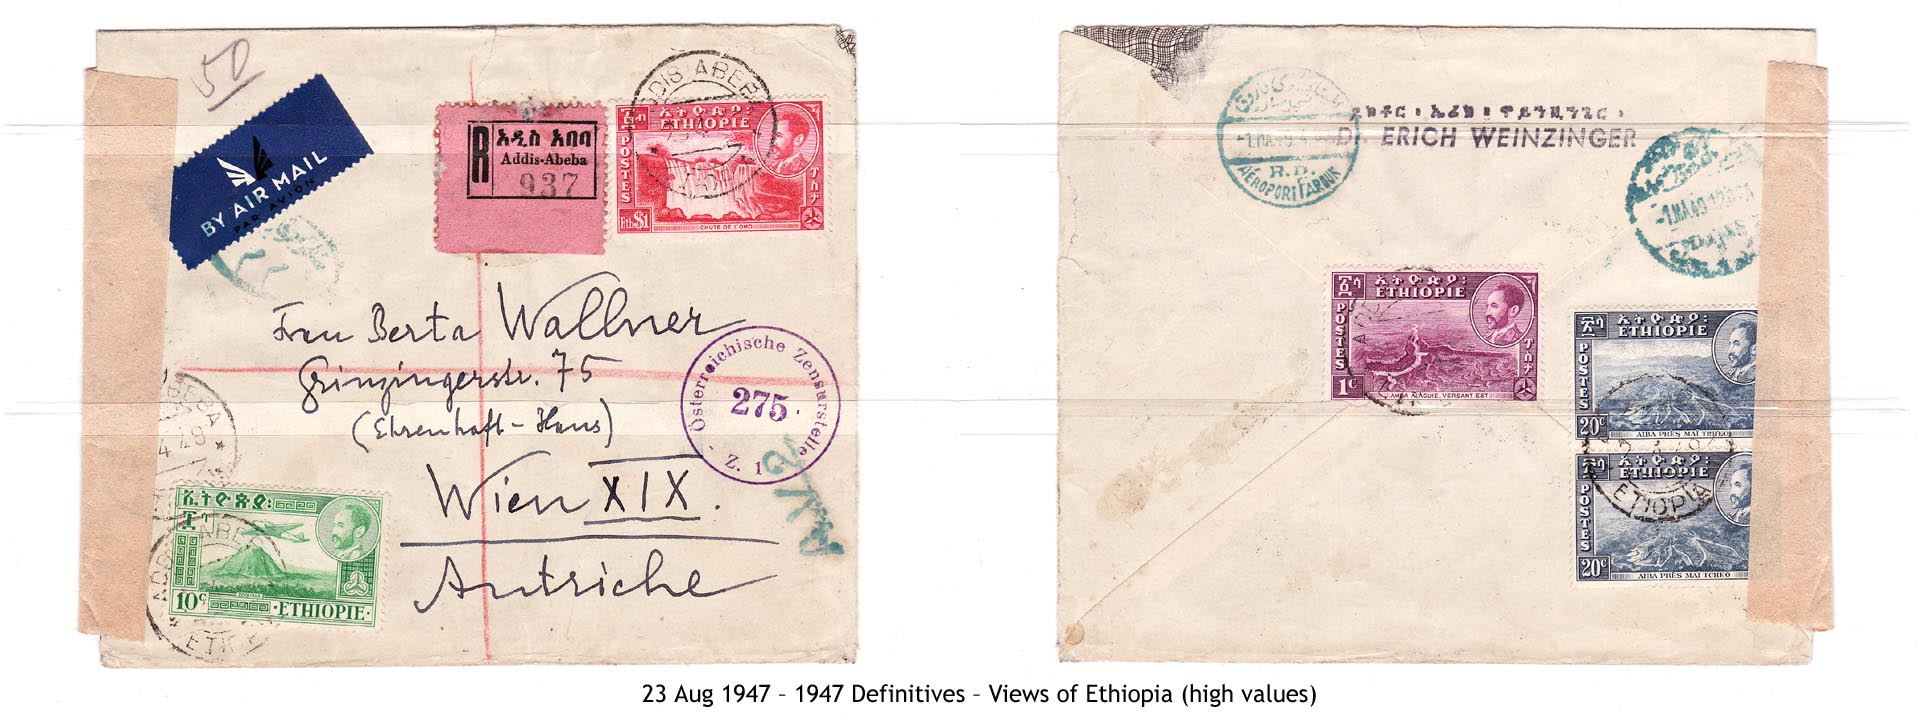 19470823 – 1947 Definitives – Views of Ethiopia (high values)